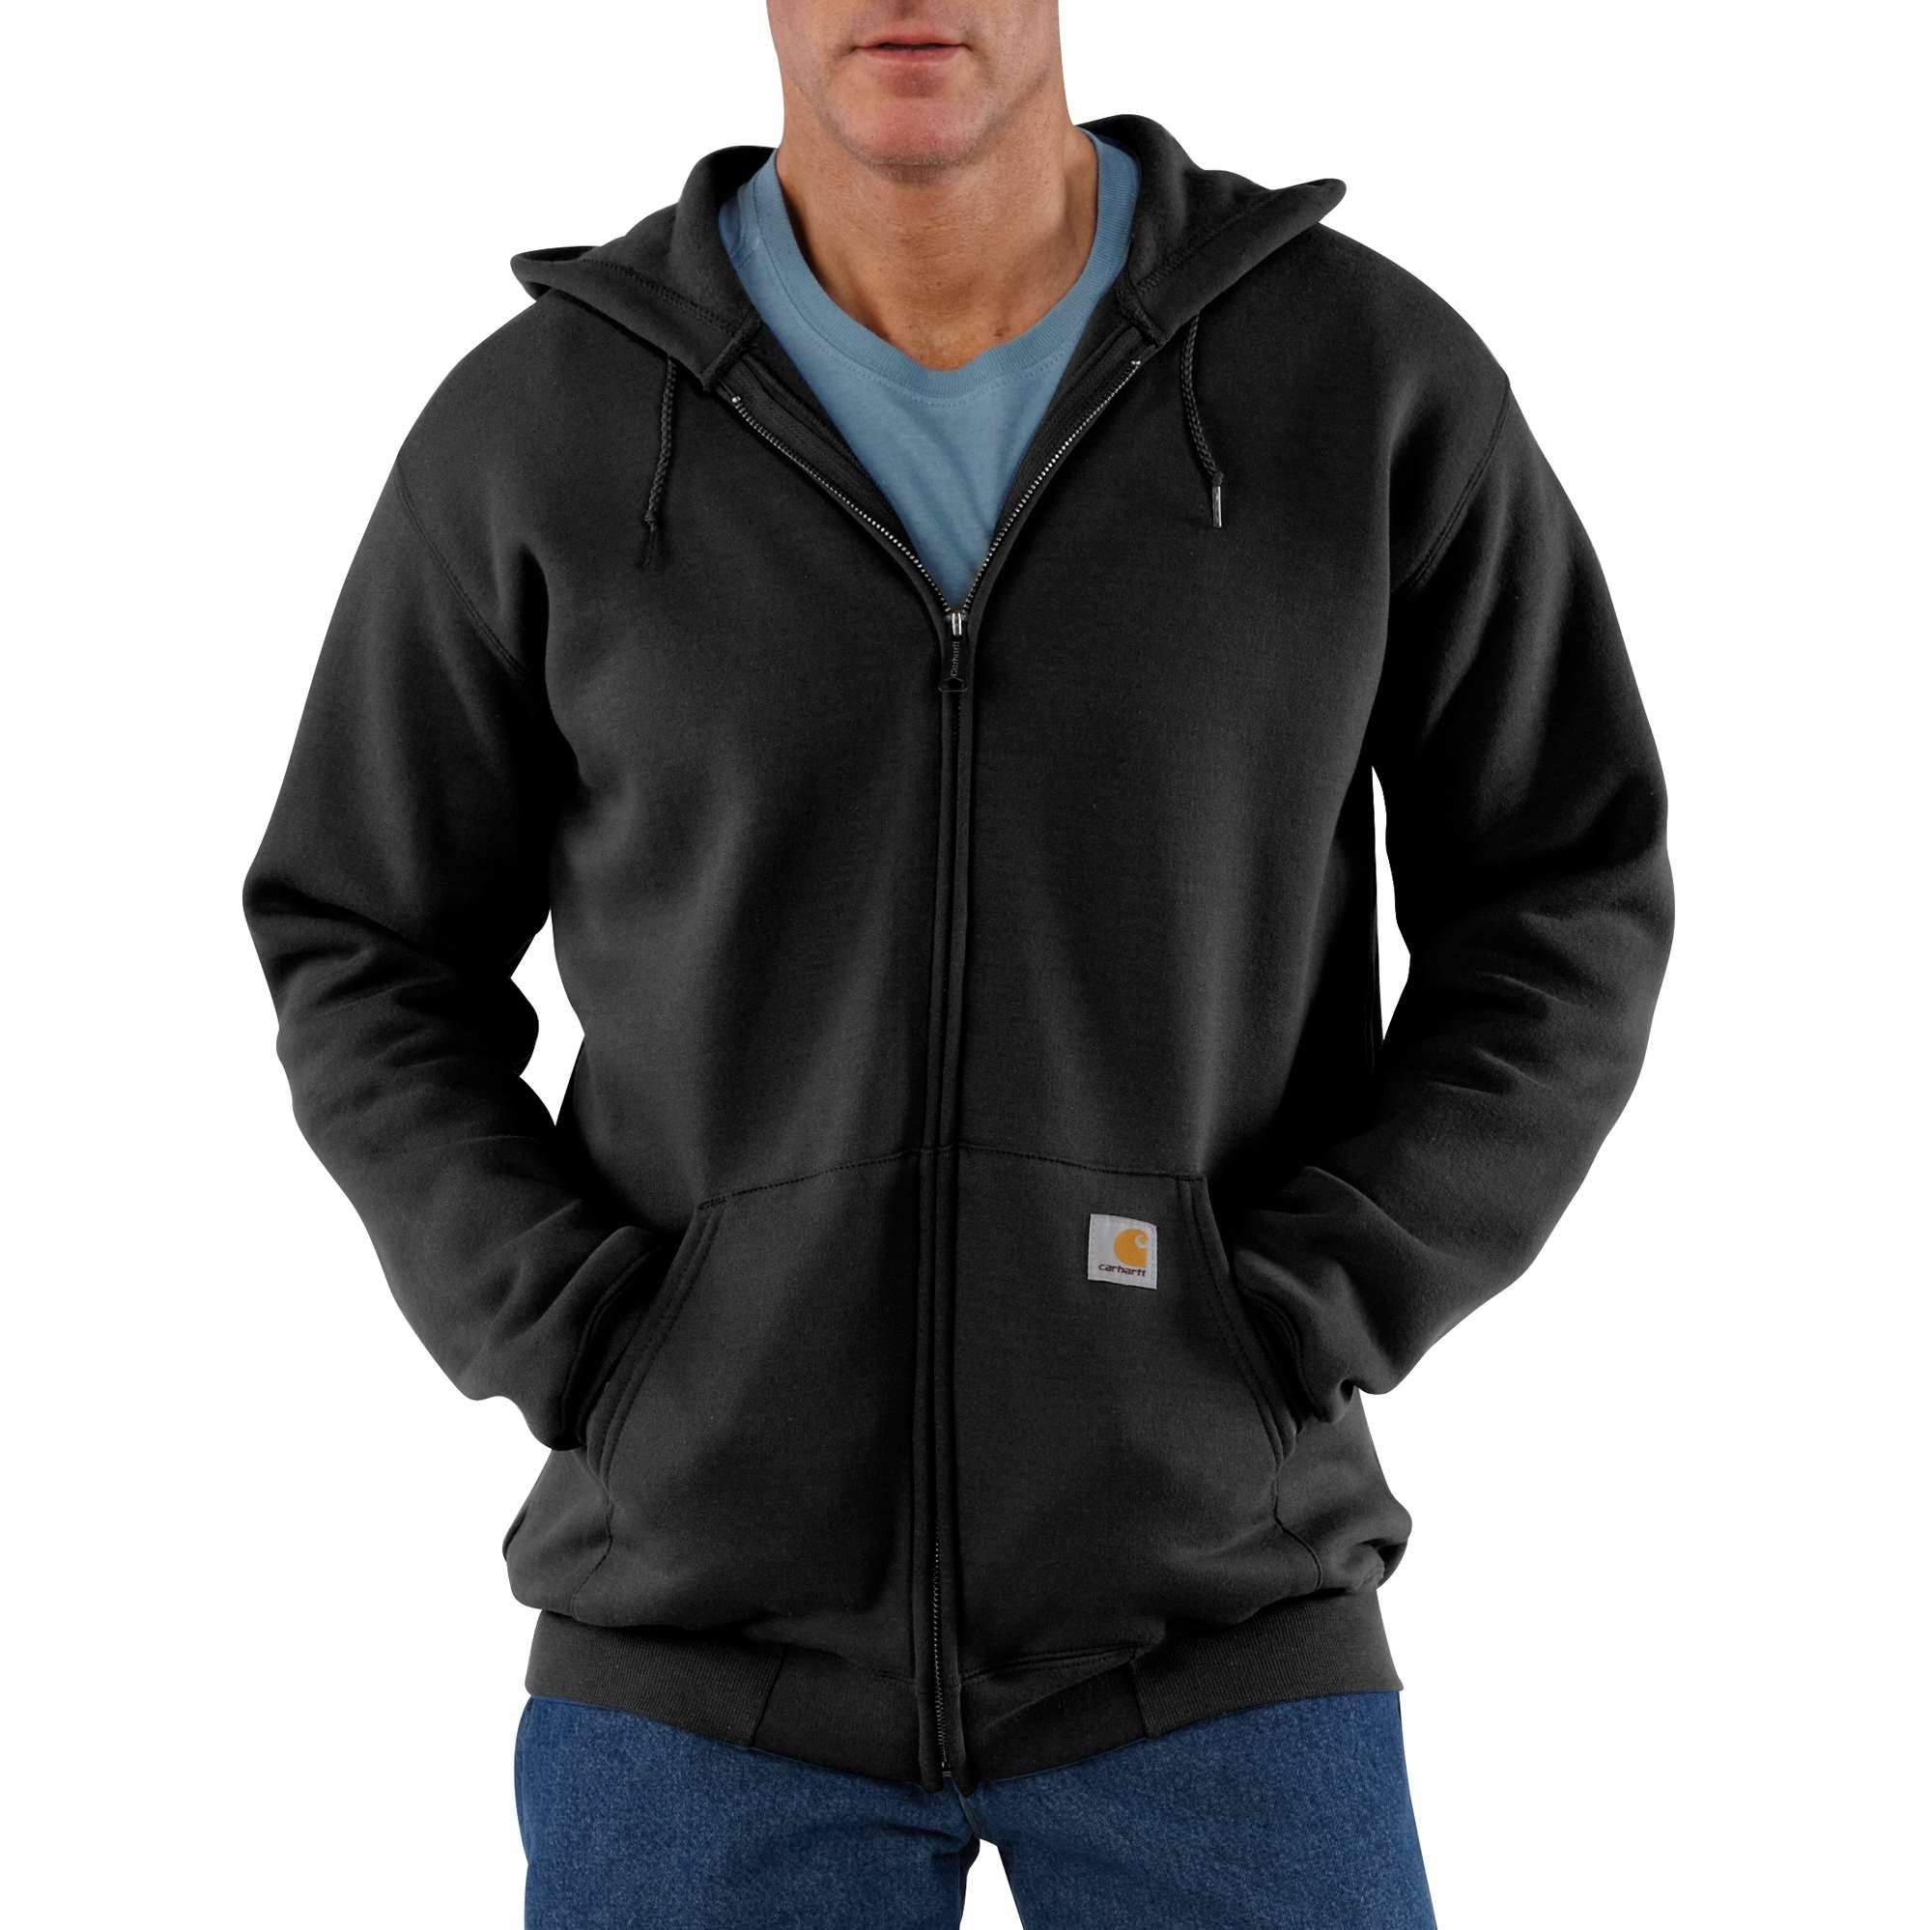 Carhartt Men's Midweight Hooded Zip Front Sweatshirt - Grey